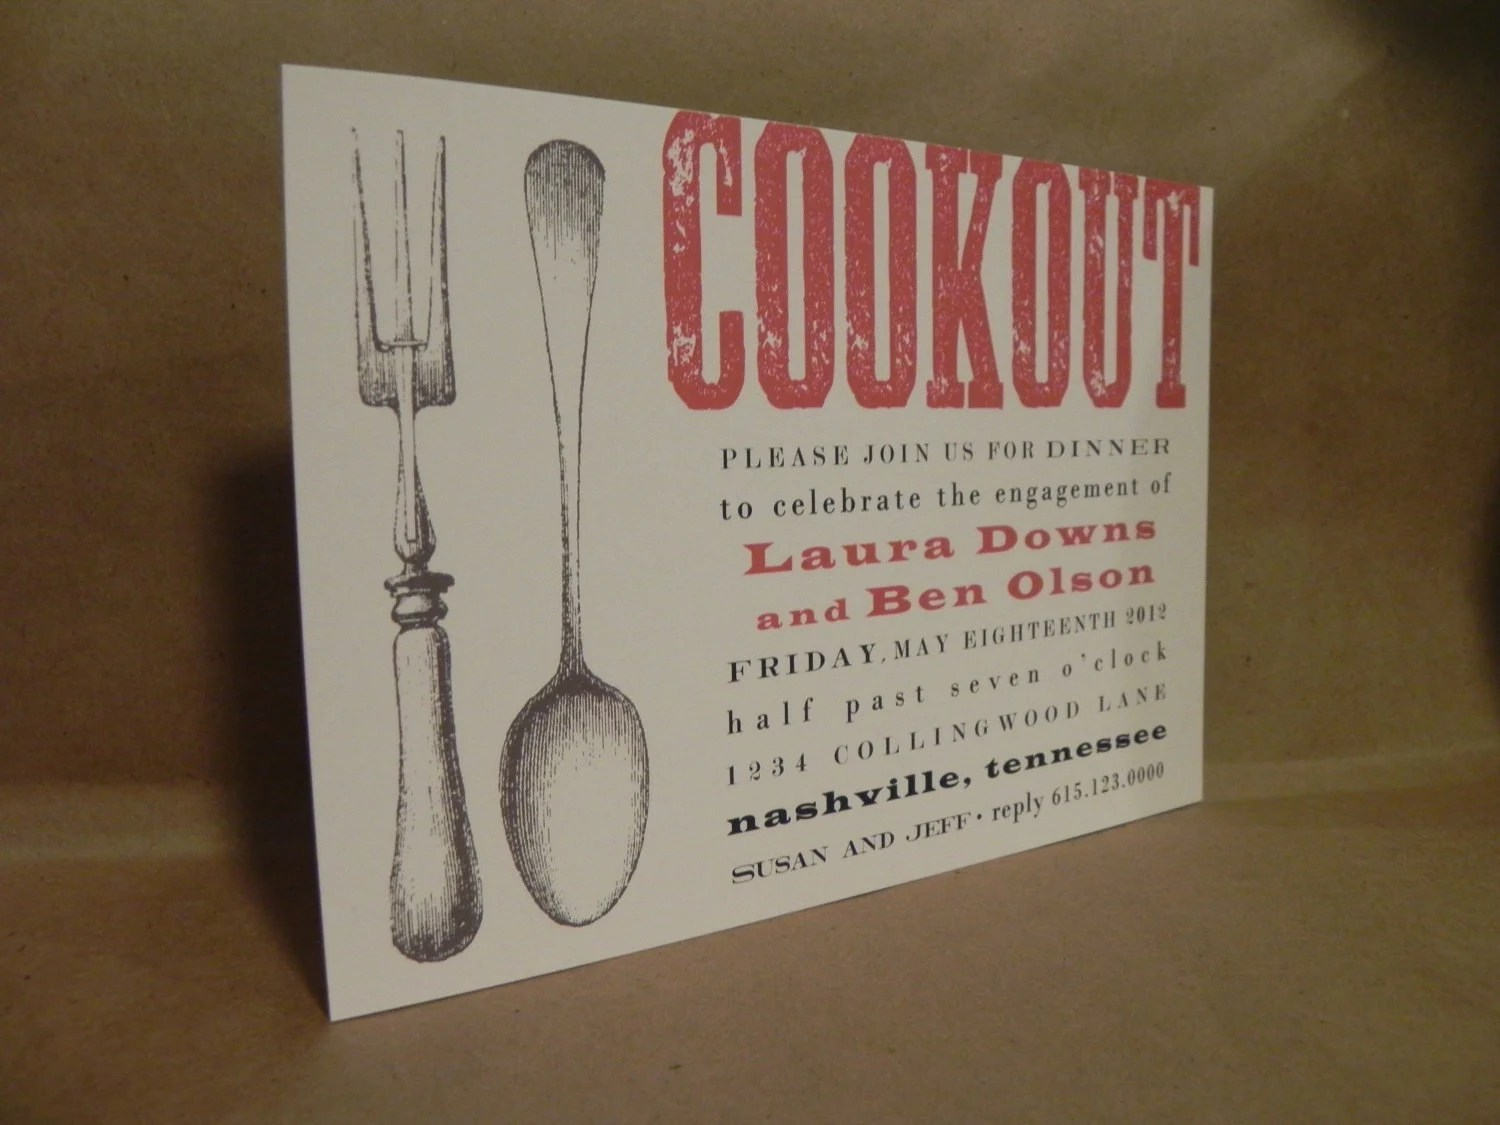 Cookout / BBQ Party Southern Supper Rehearsal / Engagement Dinner Fork and Spoon Invitation - DarbyCardsNashville